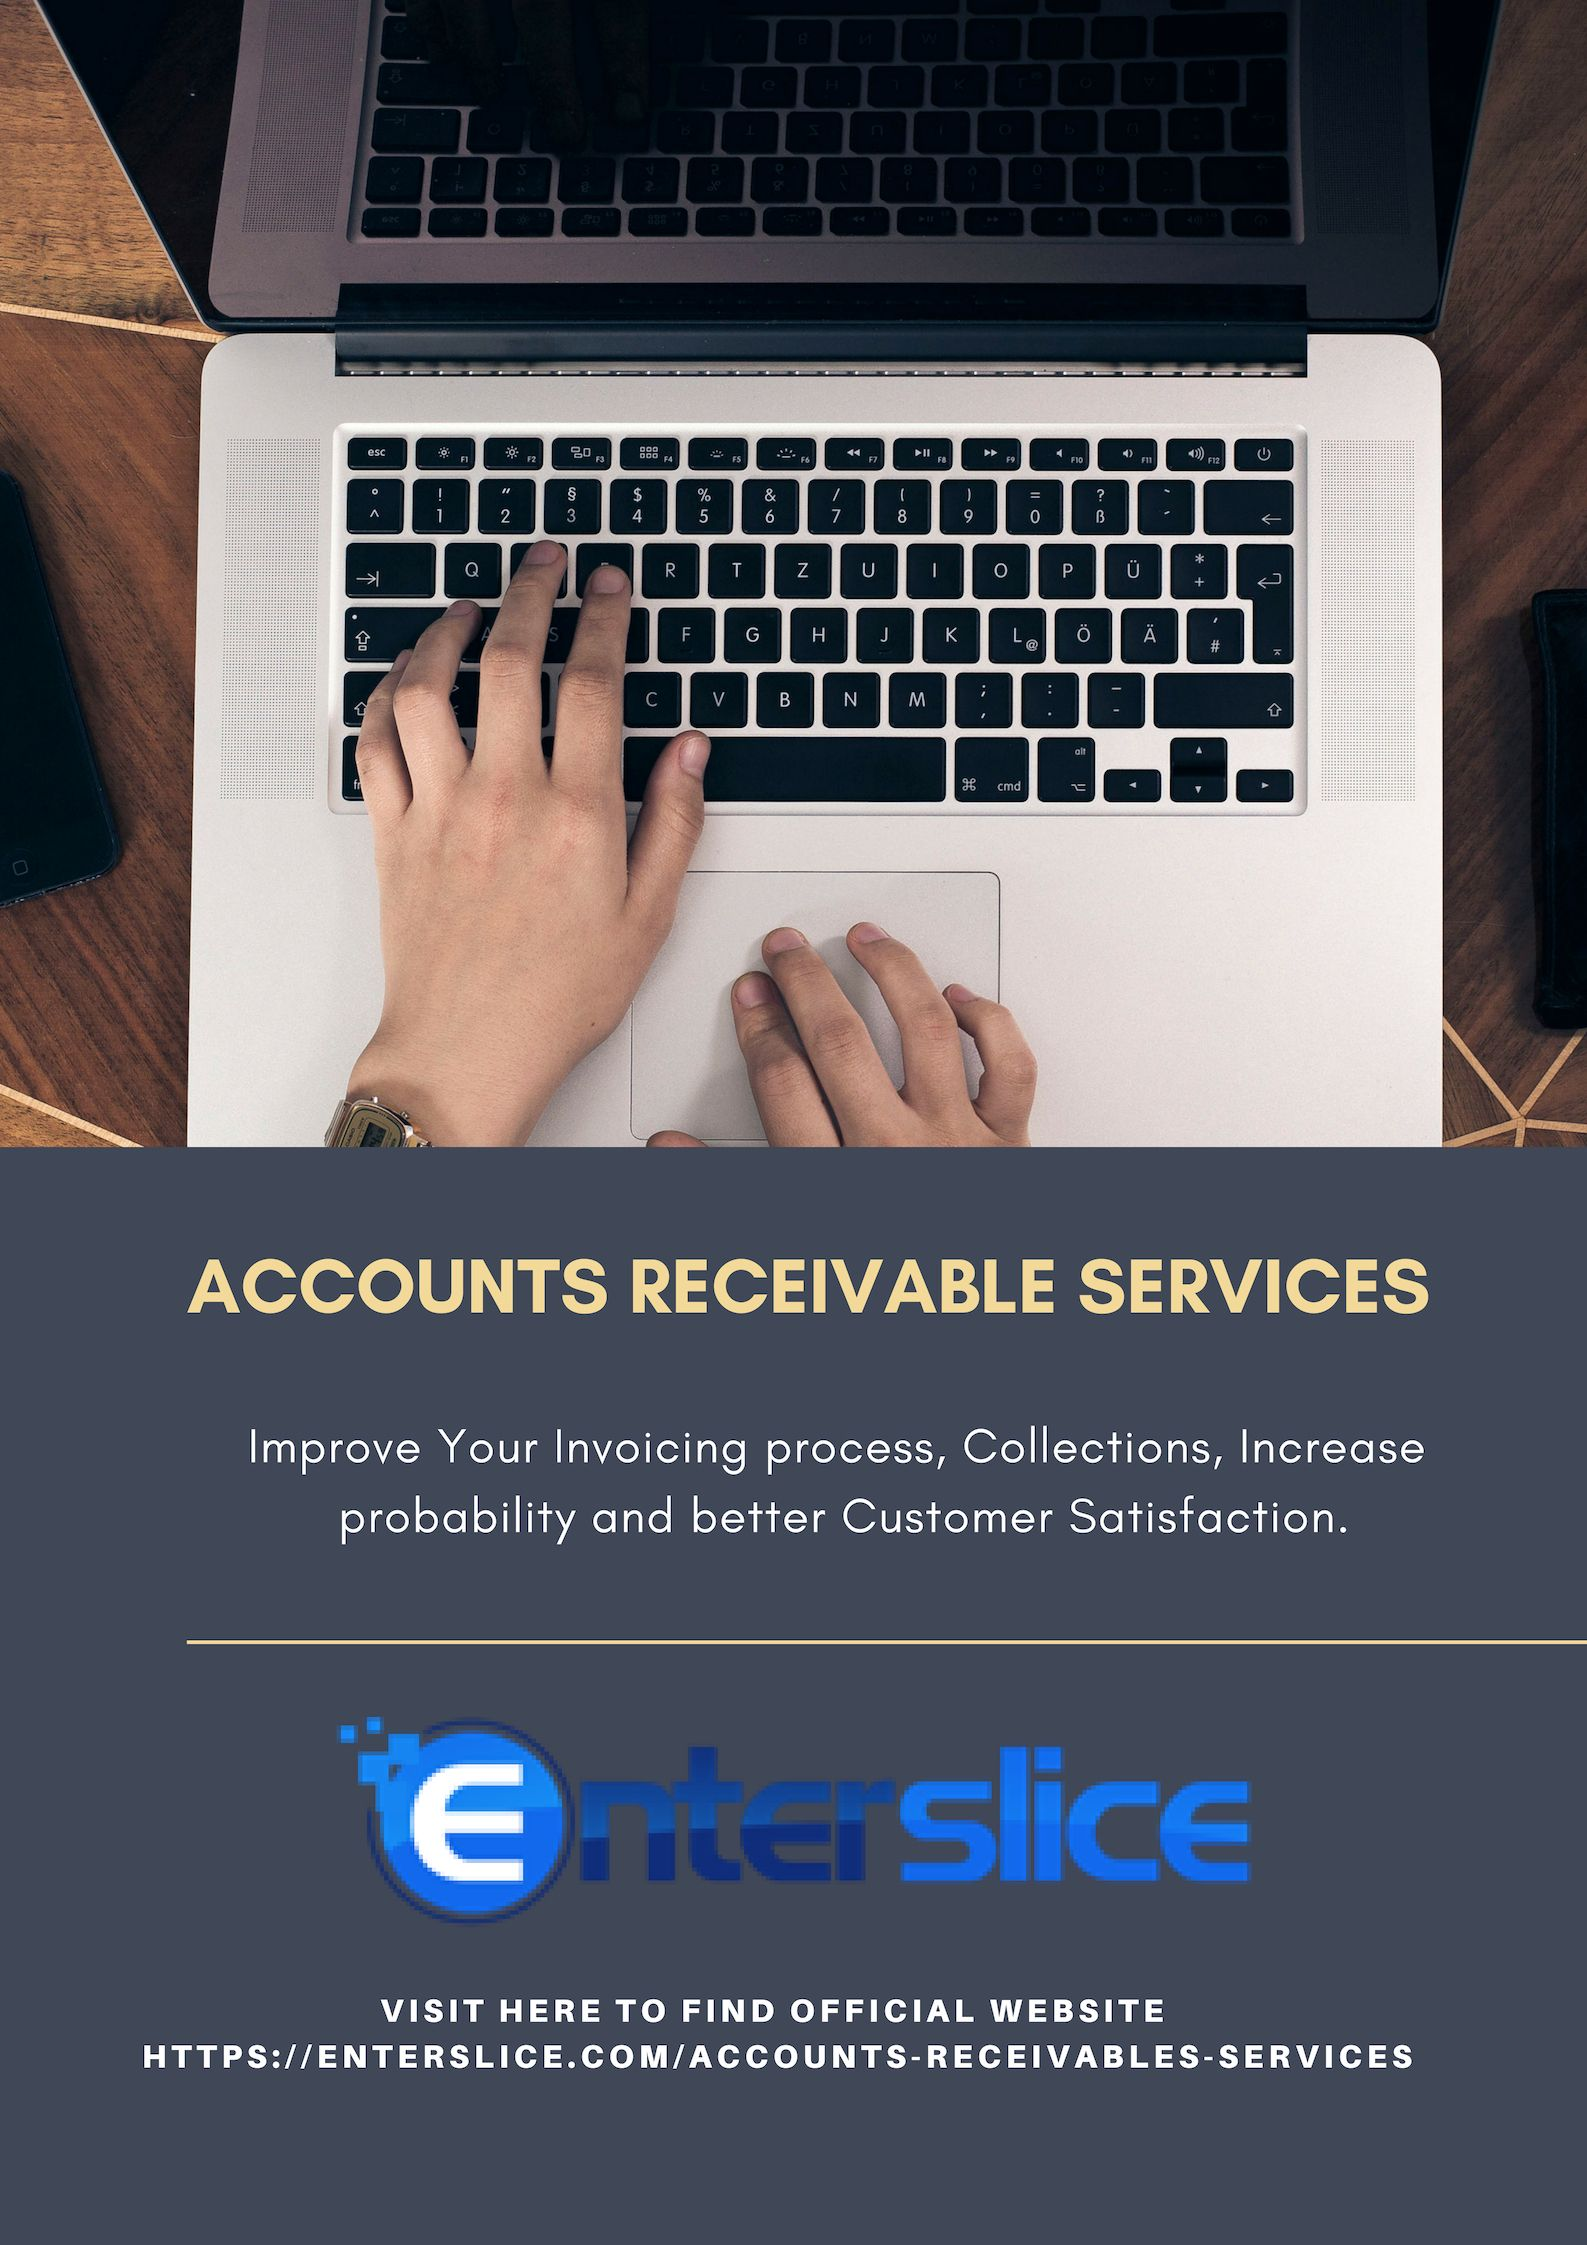 Accounts receivable services its easy if you do it smart